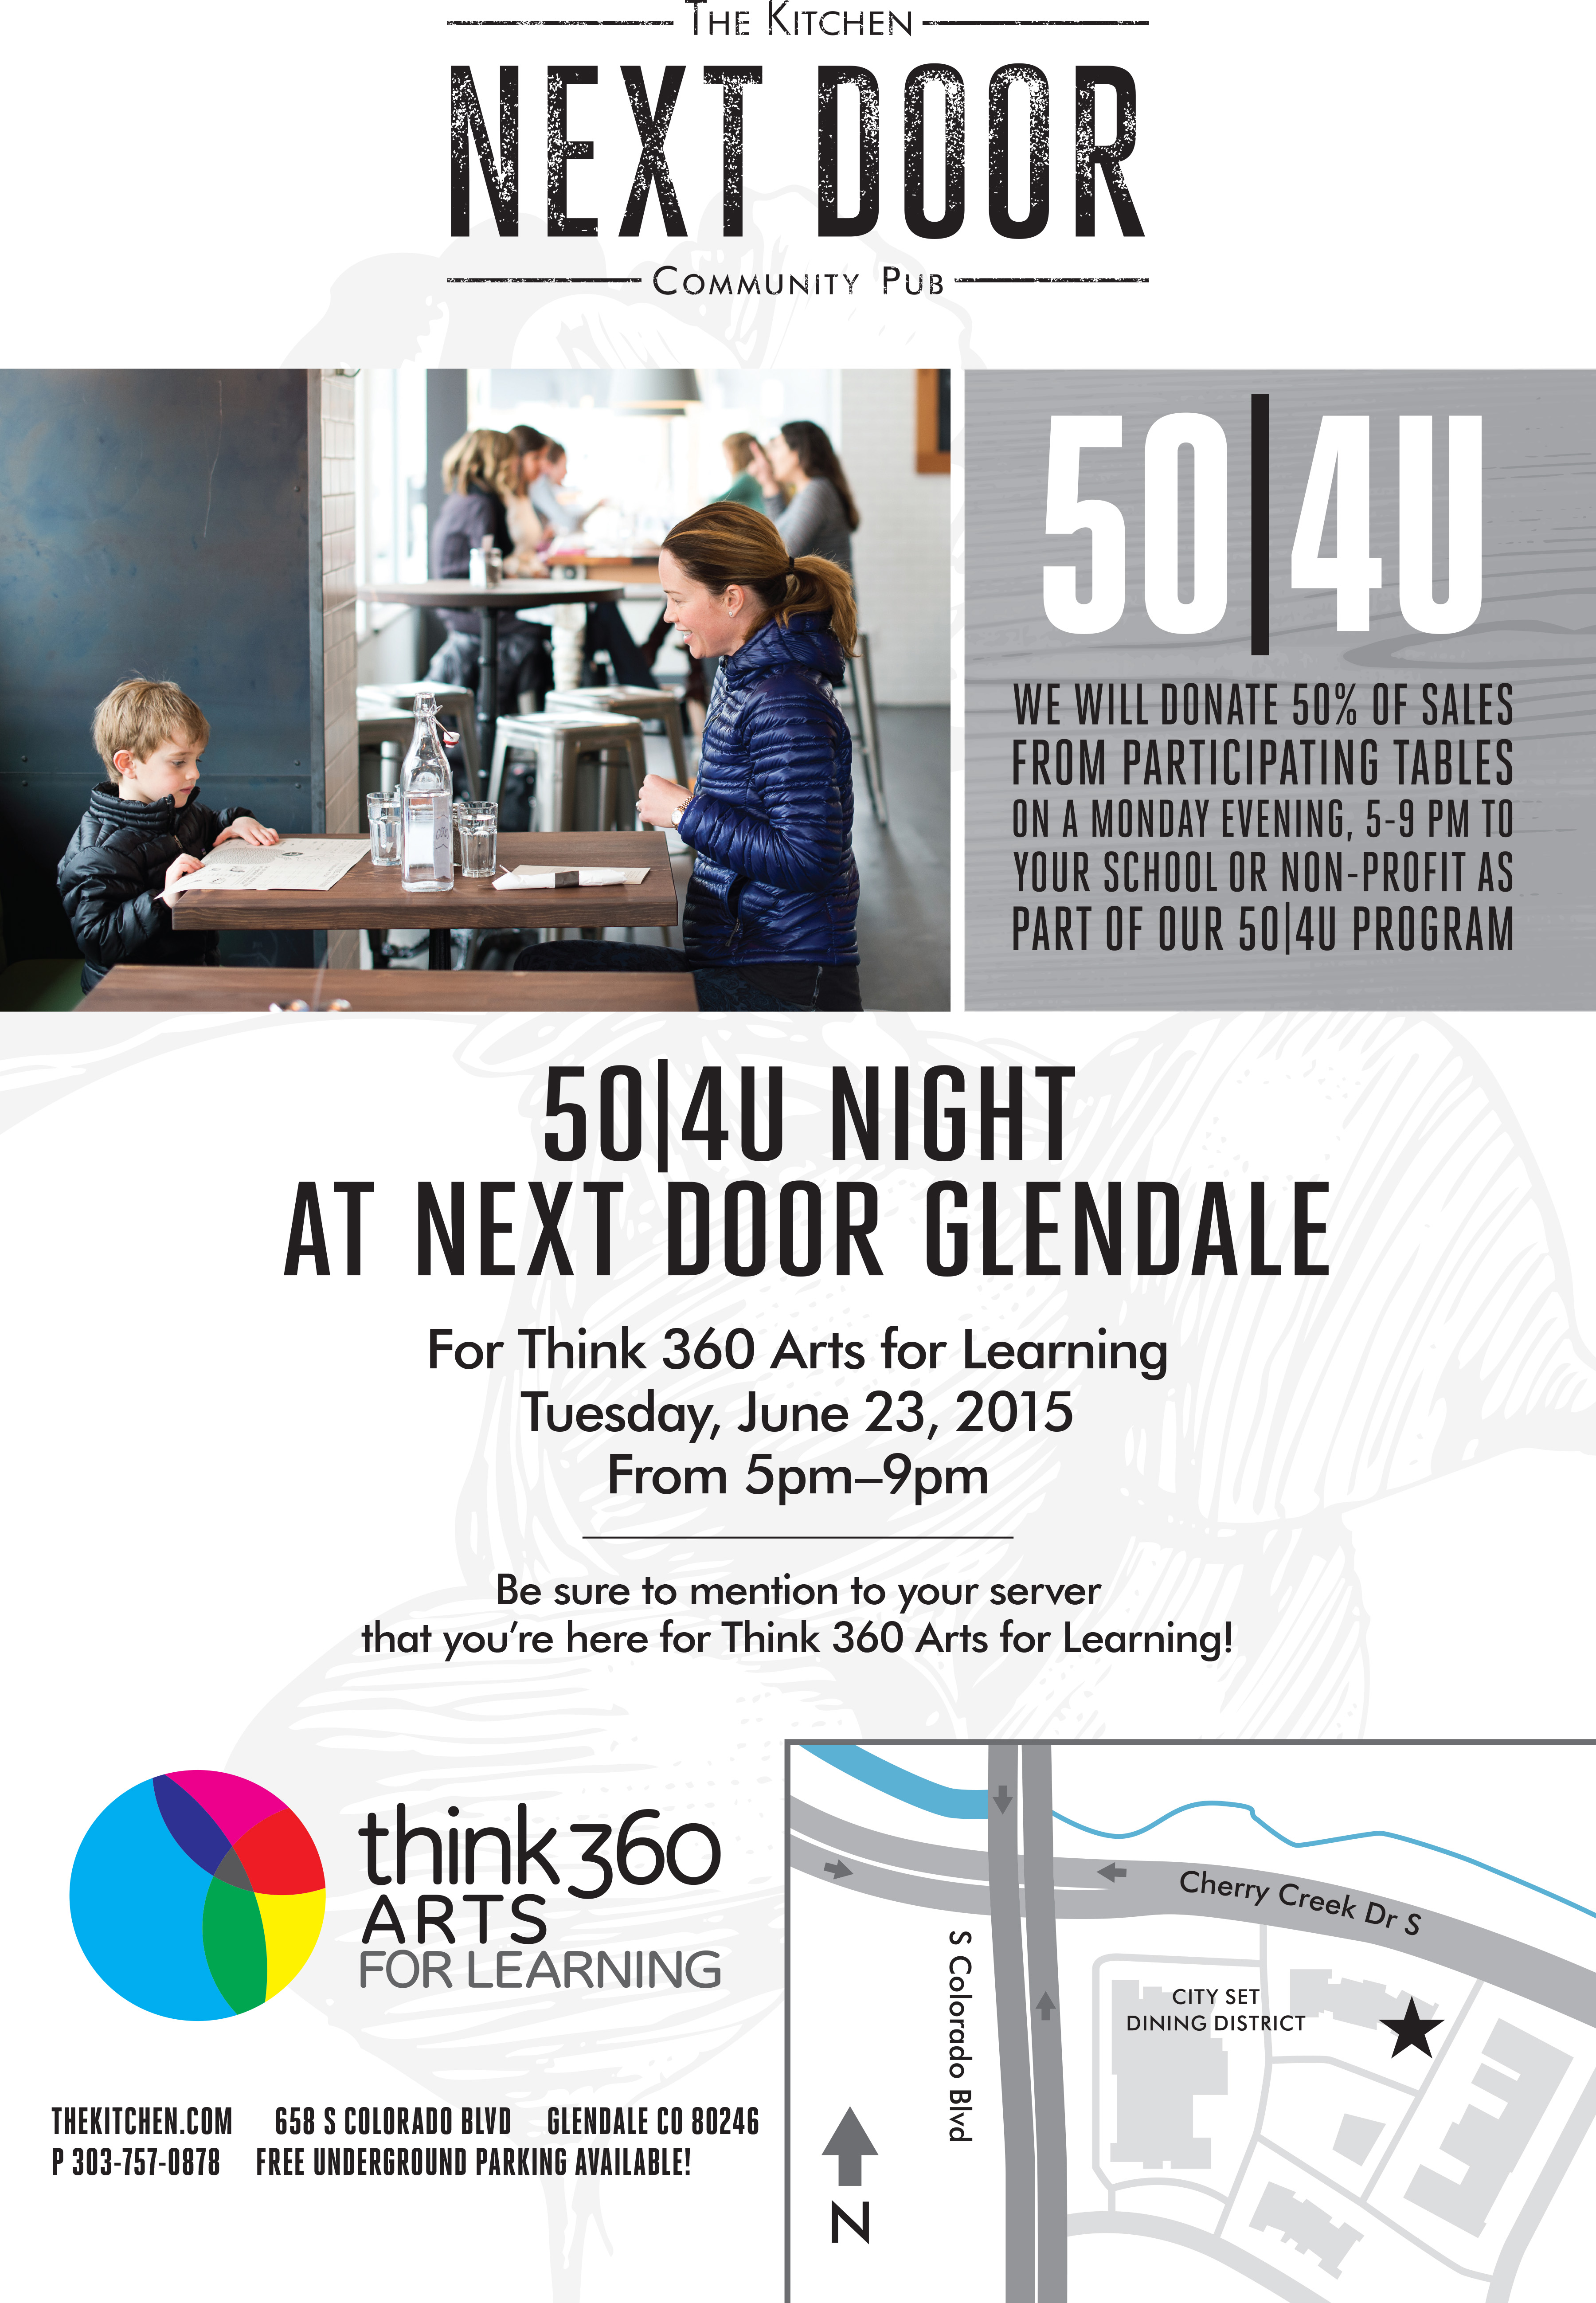 Old News Page - Think 360 Arts for Learning